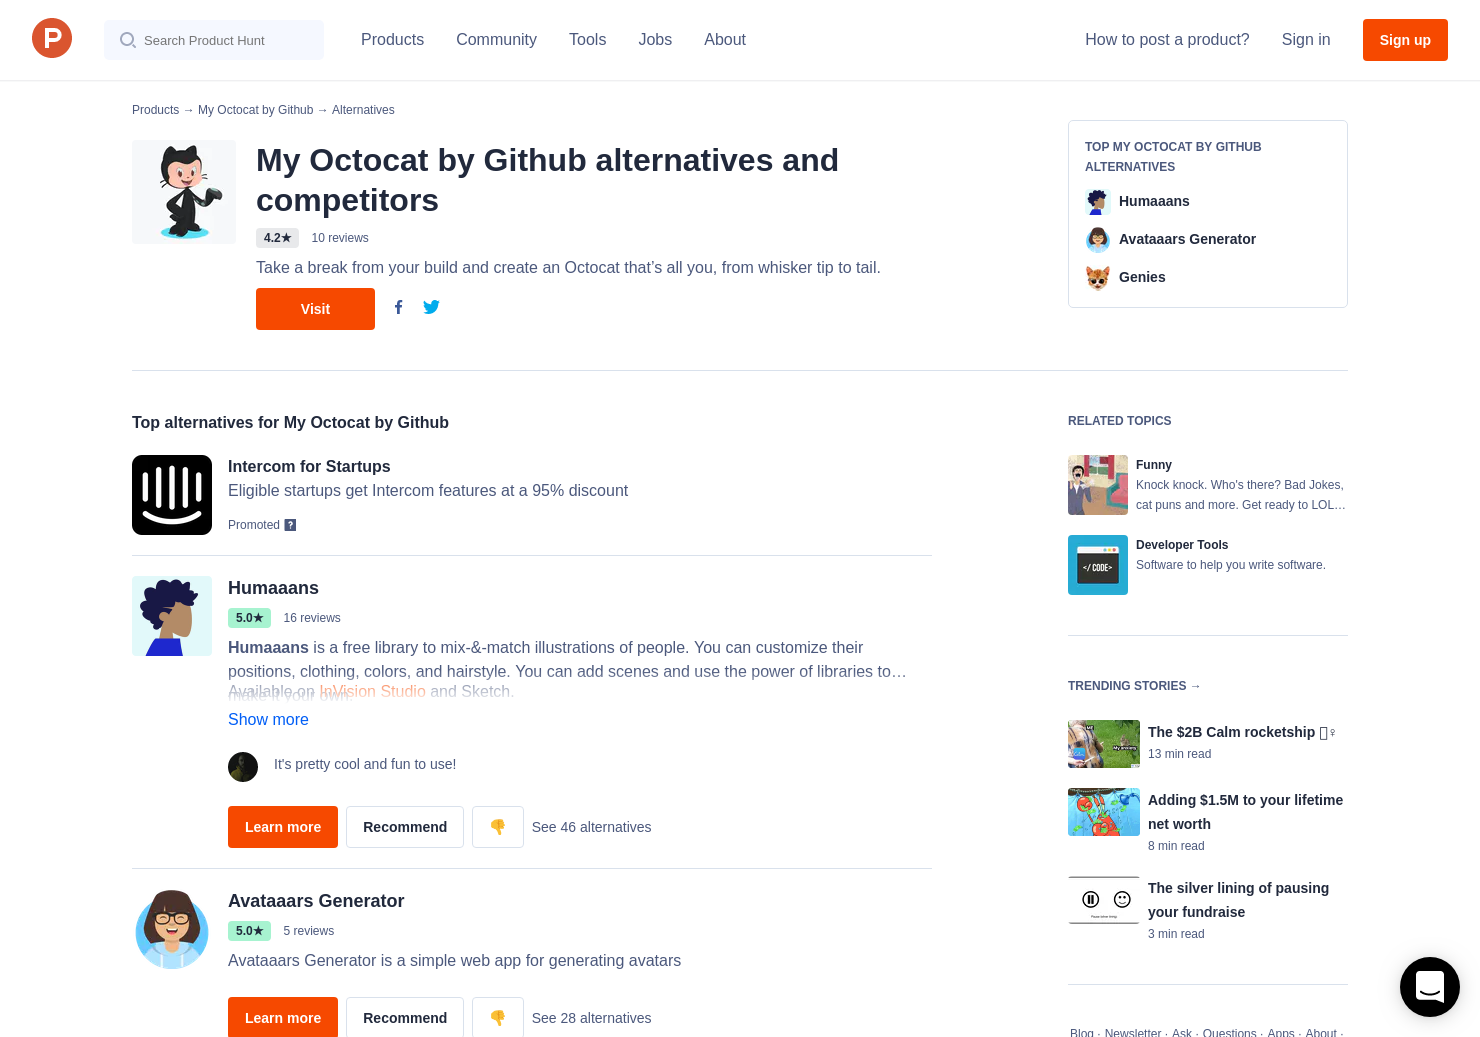 13 Alternatives to My Octocat by Github | Product Hunt